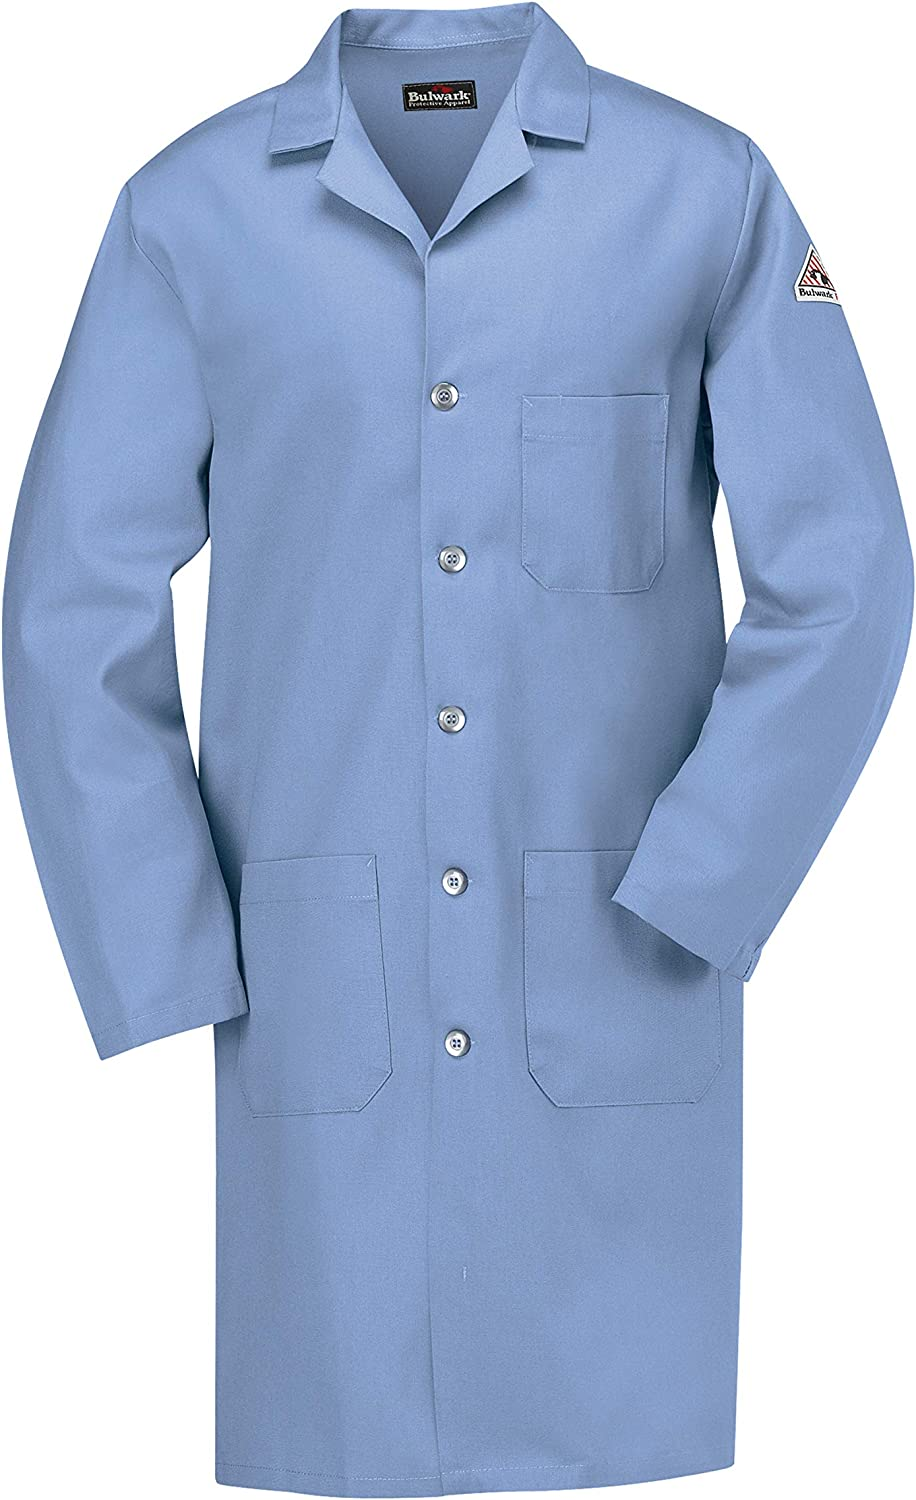 Bulwark Flame Resistant 7oz Cotton Lapel Collar Lab Coat: Clothing